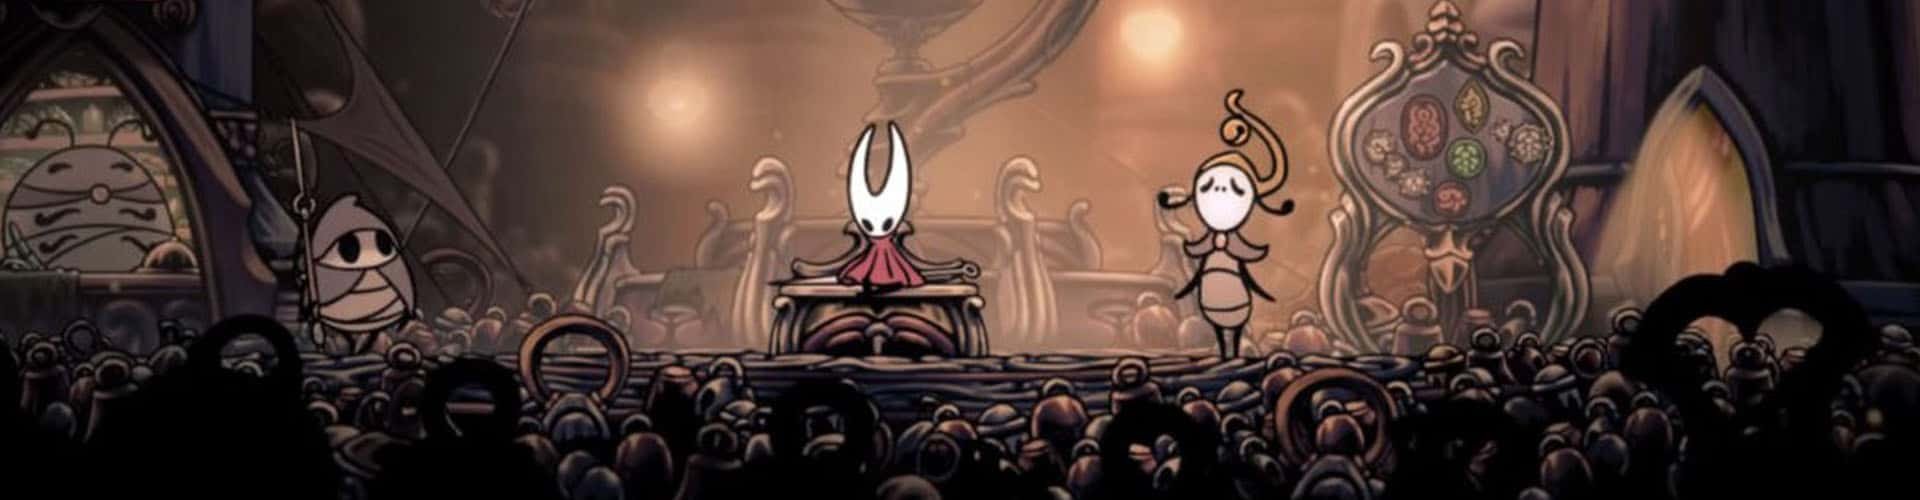 Hollow Knight: Silksong Release Date, News, Trailer and Rumors